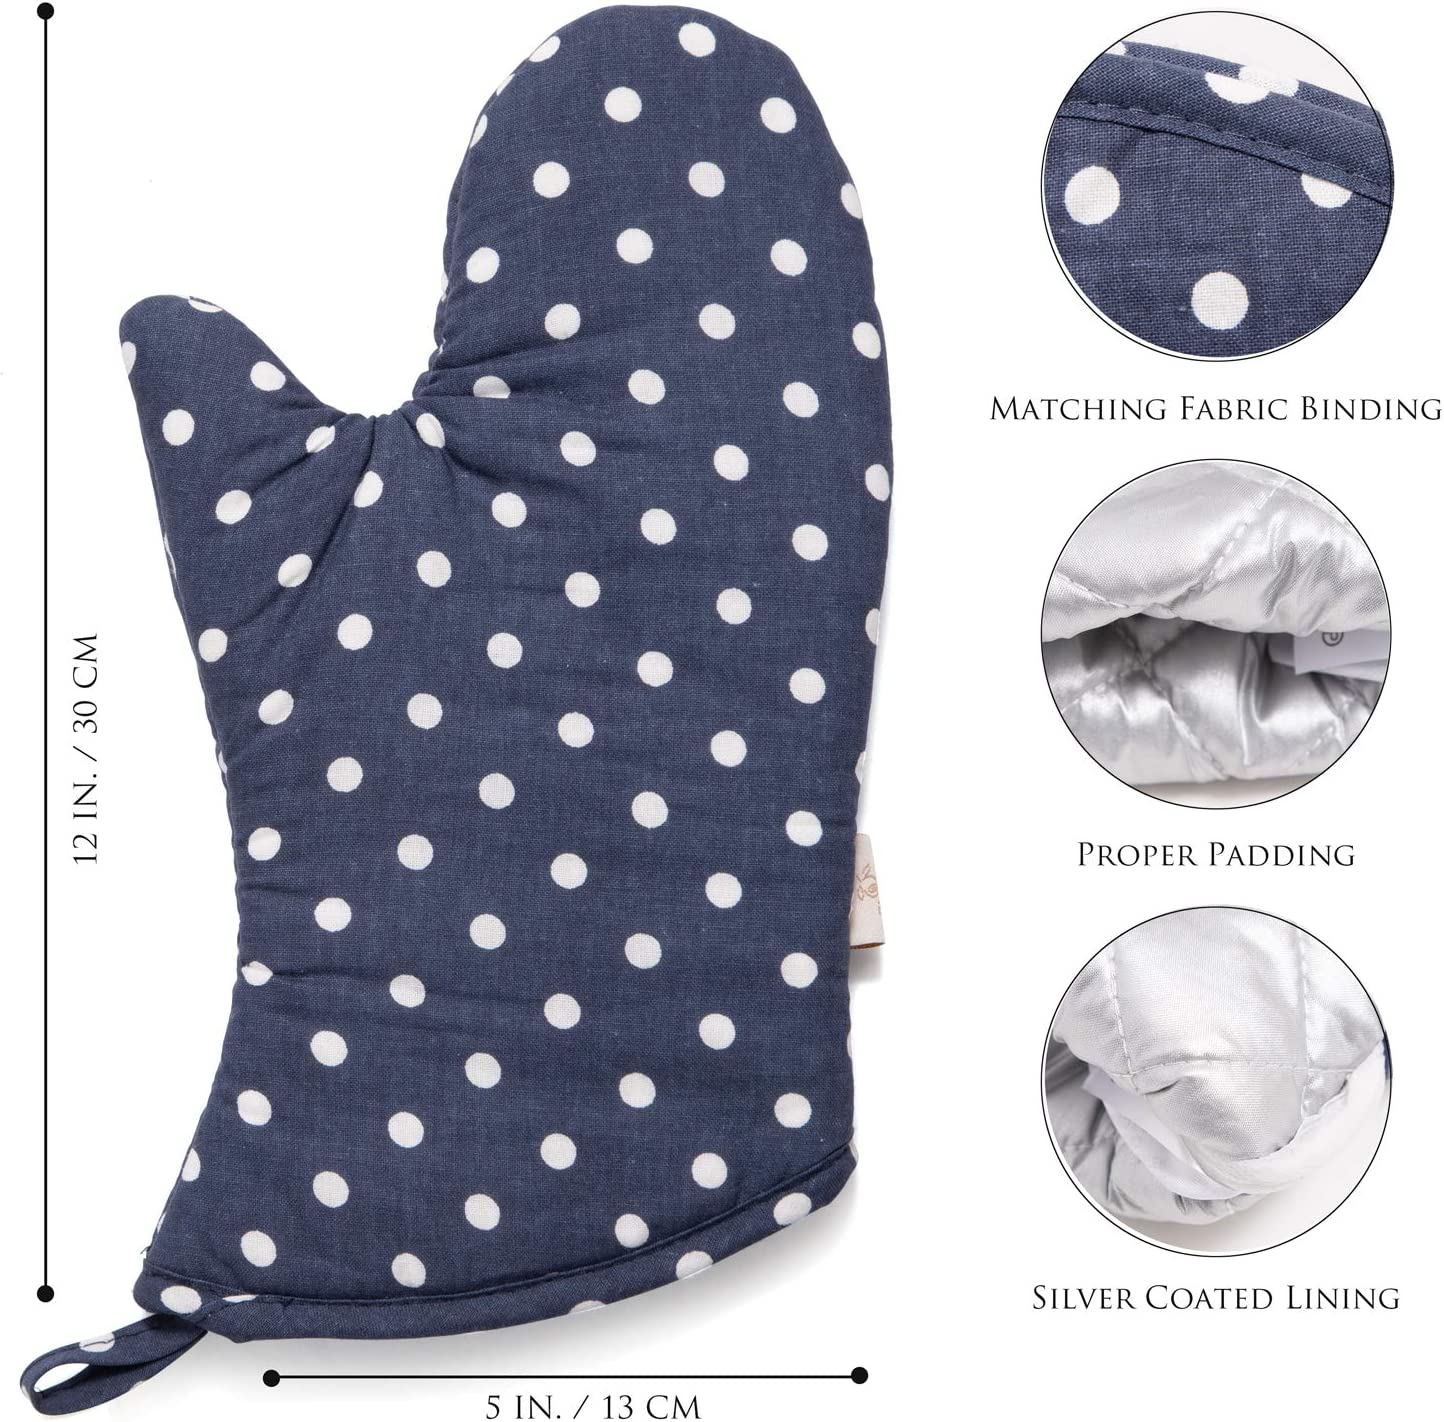 NEOVIVA Cute Oven Mitts for Easy Bake Oven Blue Navy Oven Gloves for Large Hands Polka Dots Crown Blue